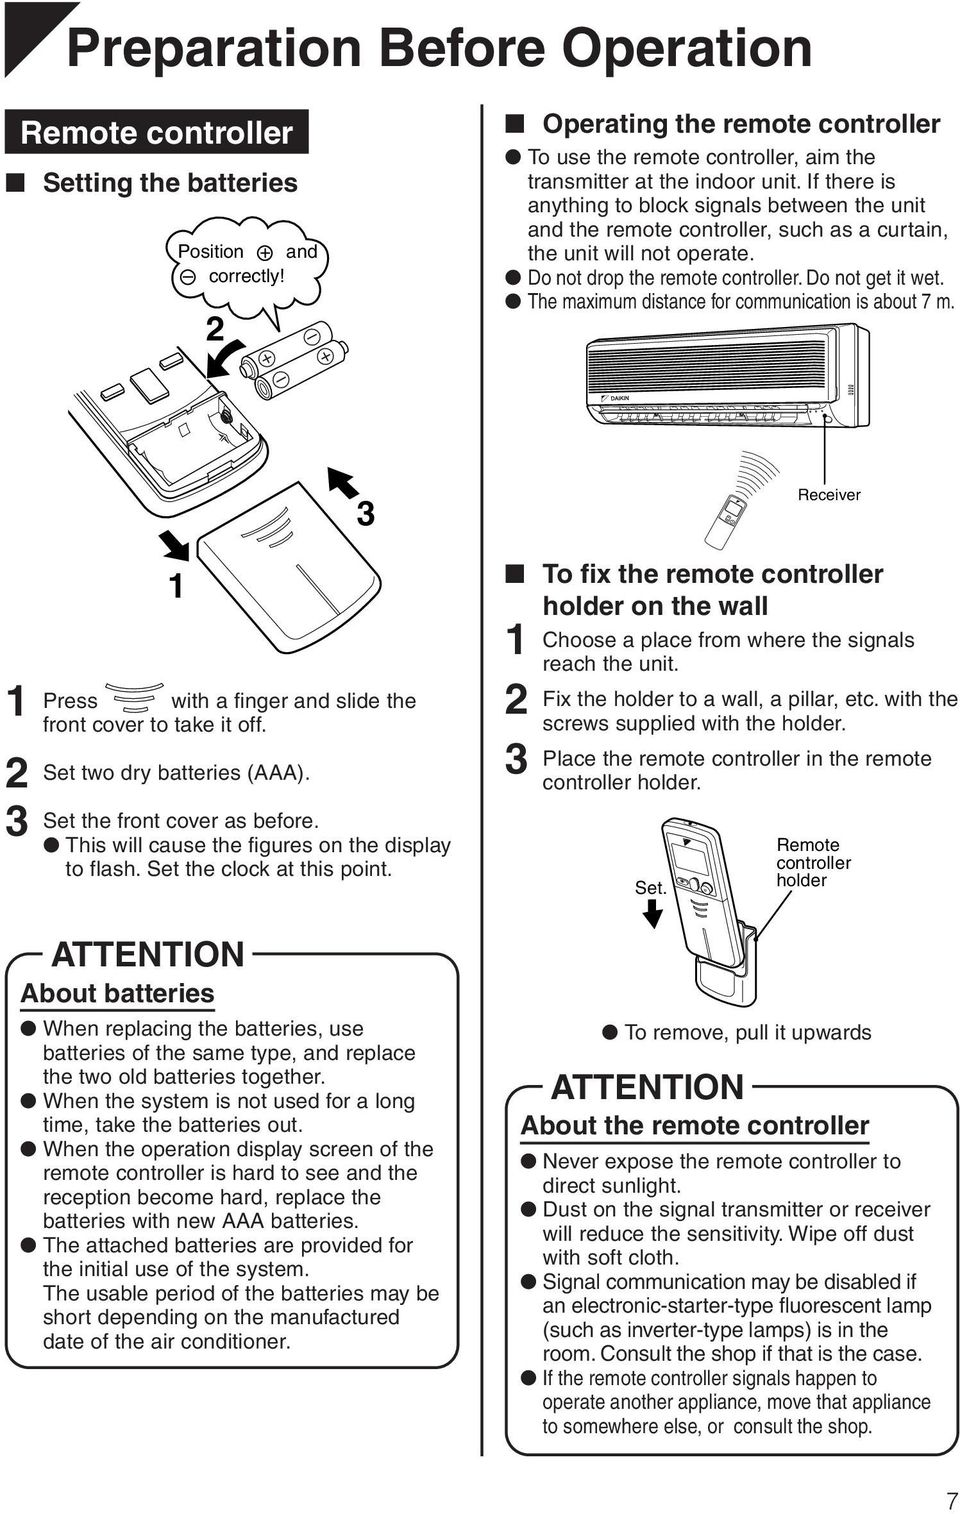 If there is anything to block signals between the unit and the remote controller, such as a curtain, the unit will not operate. Do not drop the remote controller. Do not get it wet.